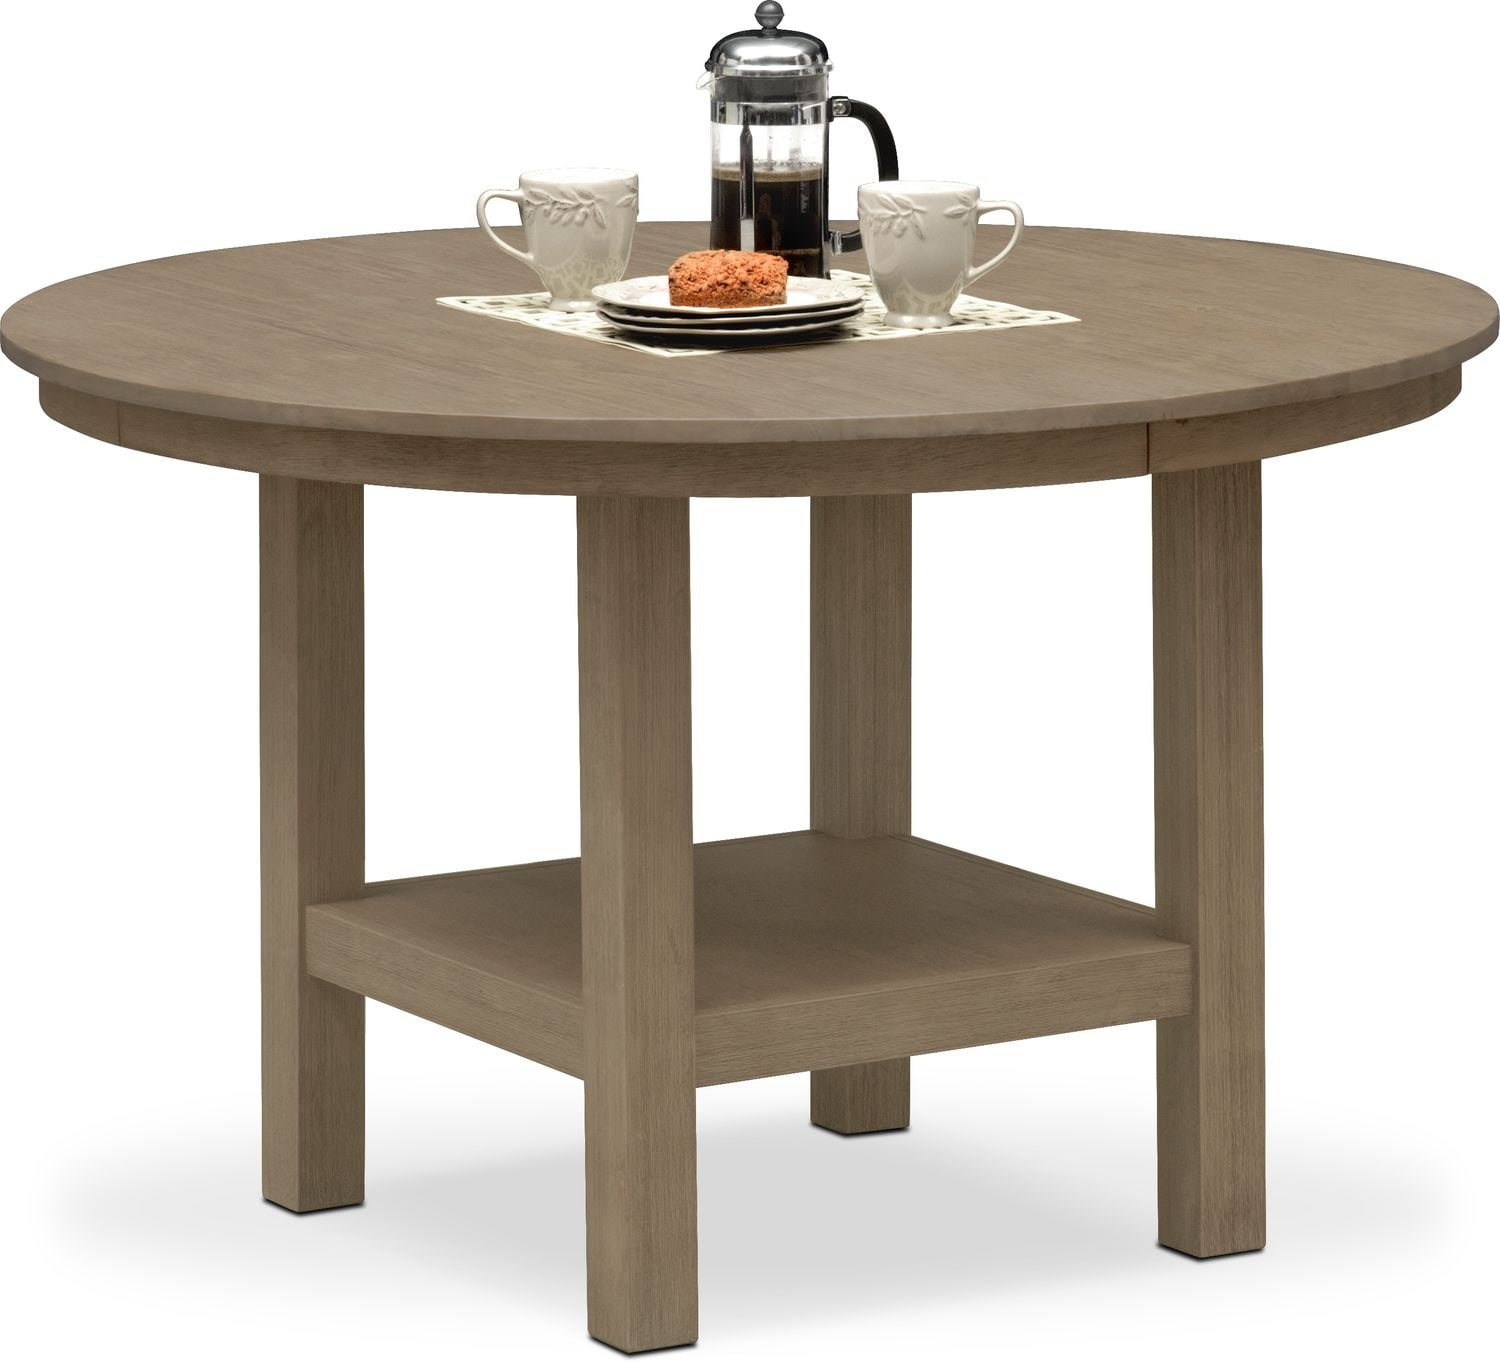 Tribeca Round Dining Table   Gray